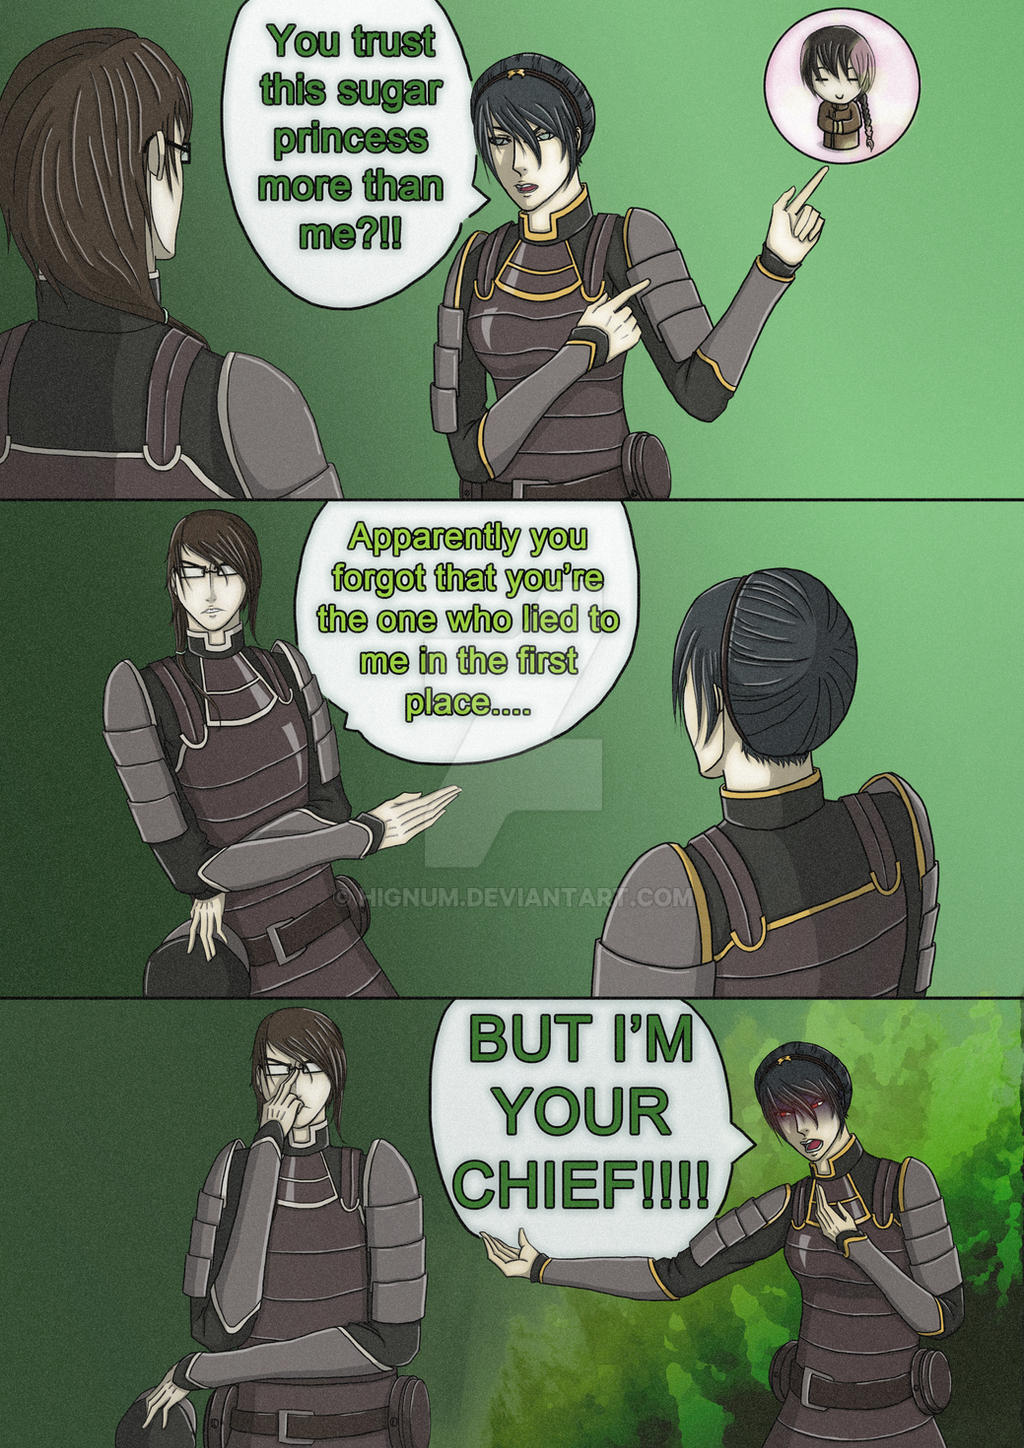 Toph Beifong and Liang Fai - Trust Issues by hignum on